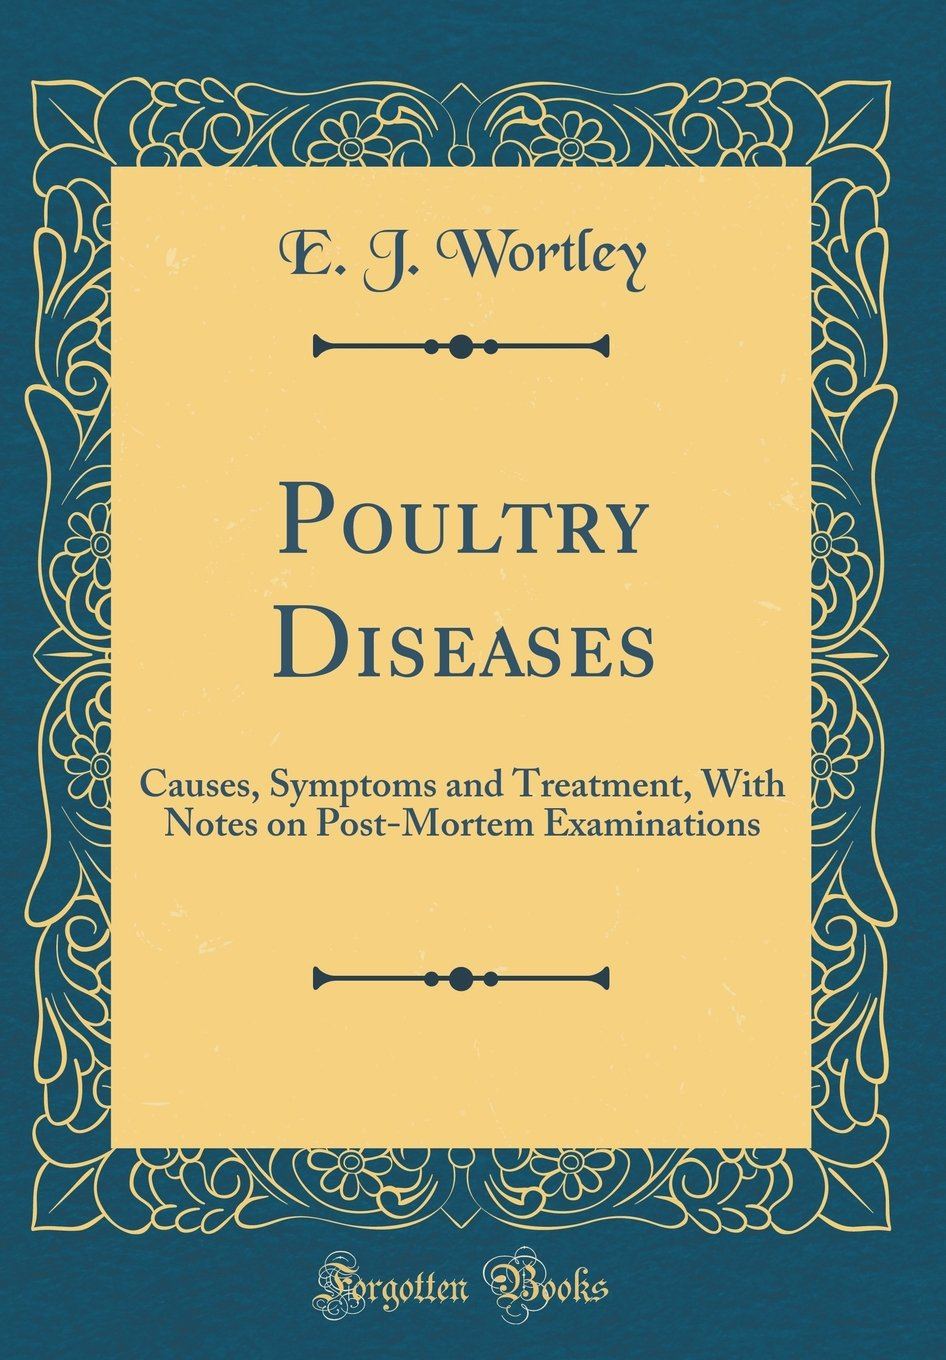 Poultry Diseases: Causes, Symptoms and Treatment, with Notes